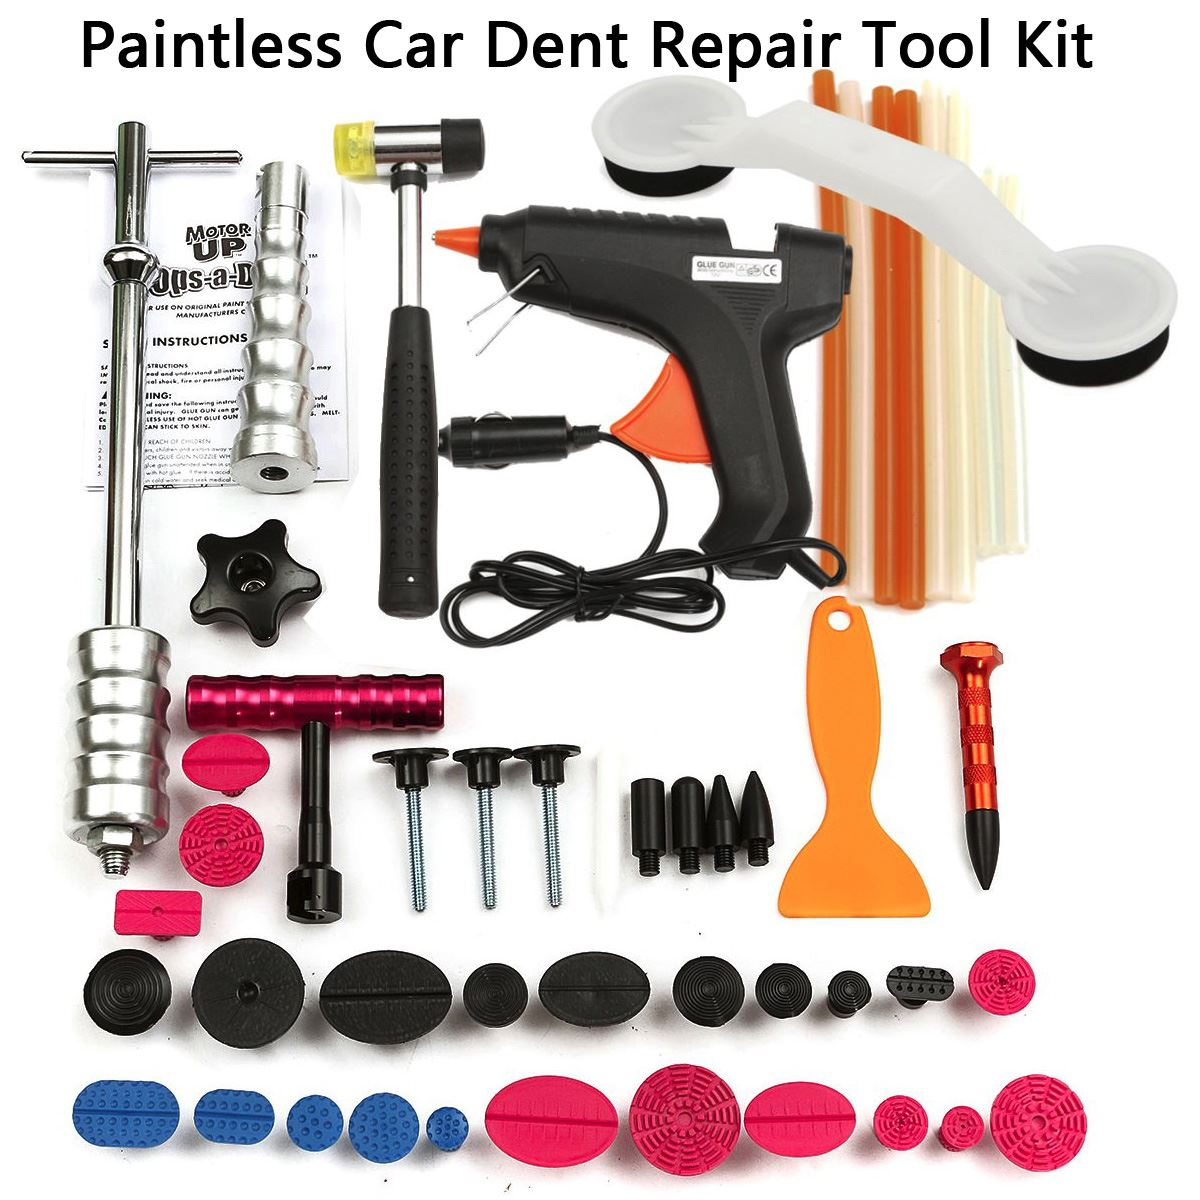 PDR Tools Car Repair Tool Set Dent Removal Slide Hammer Puller Lifter Kit Paintless Dent Repair Tabs with Glue-Gun watch link removal kit adjuster repair tool set with 5 pins